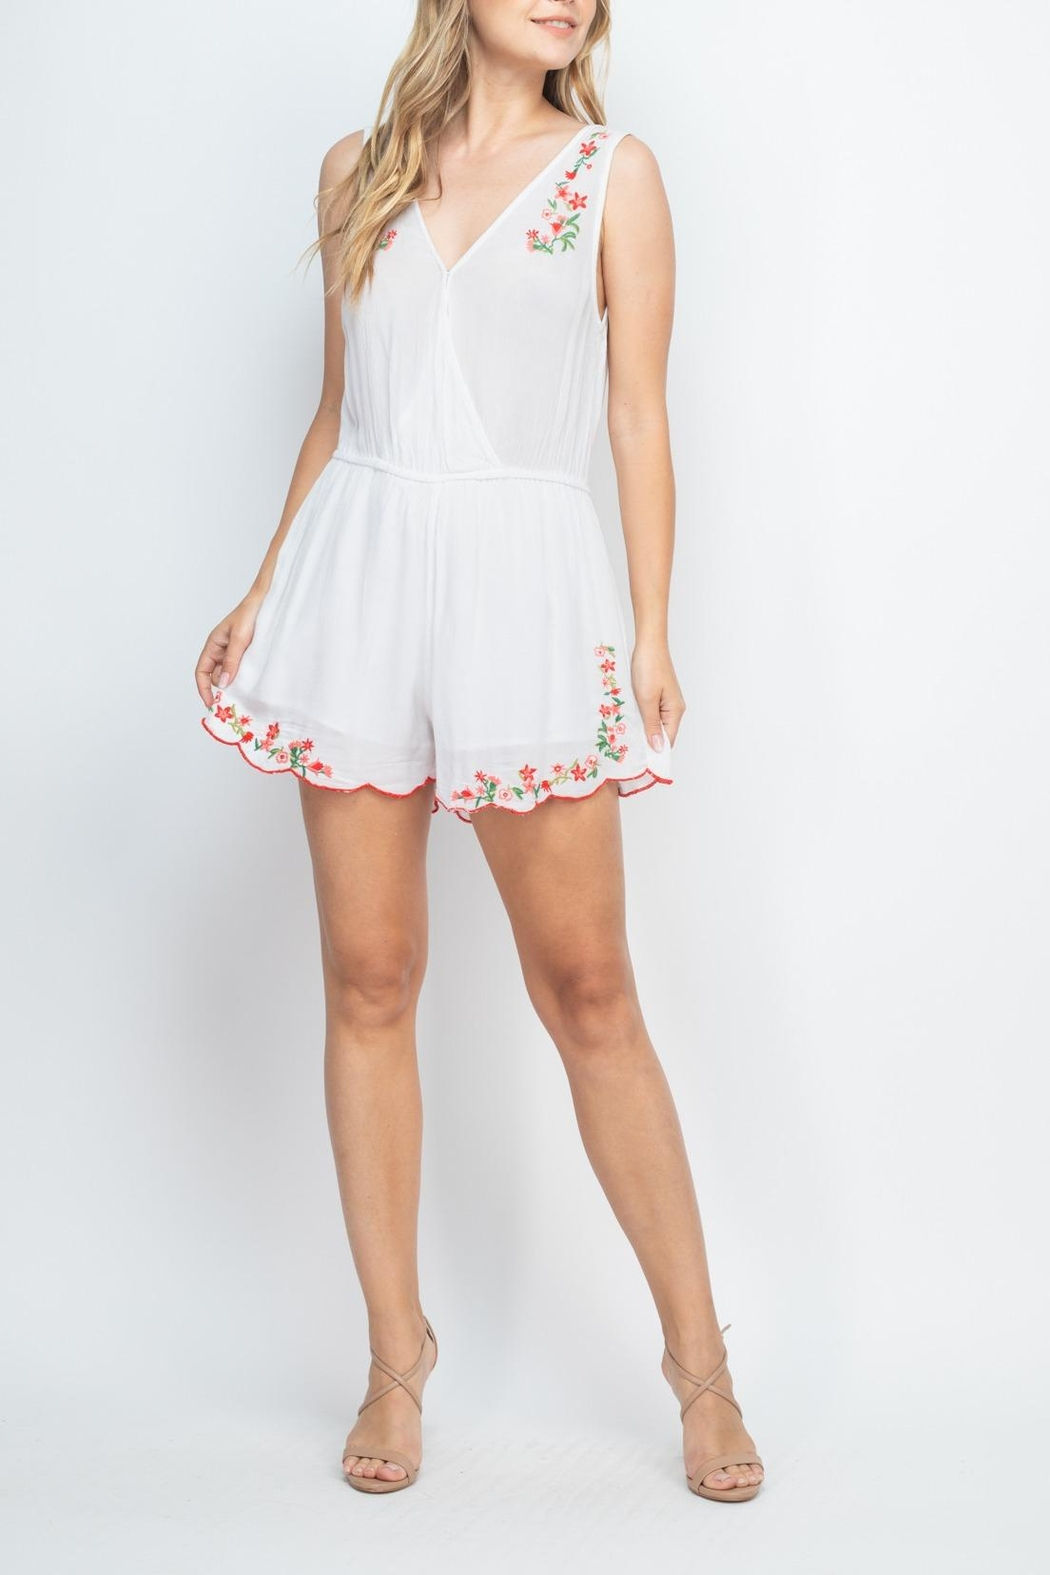 Riah Fashion White-With-Flowers-Embroidery-Romper - Side Cropped Image